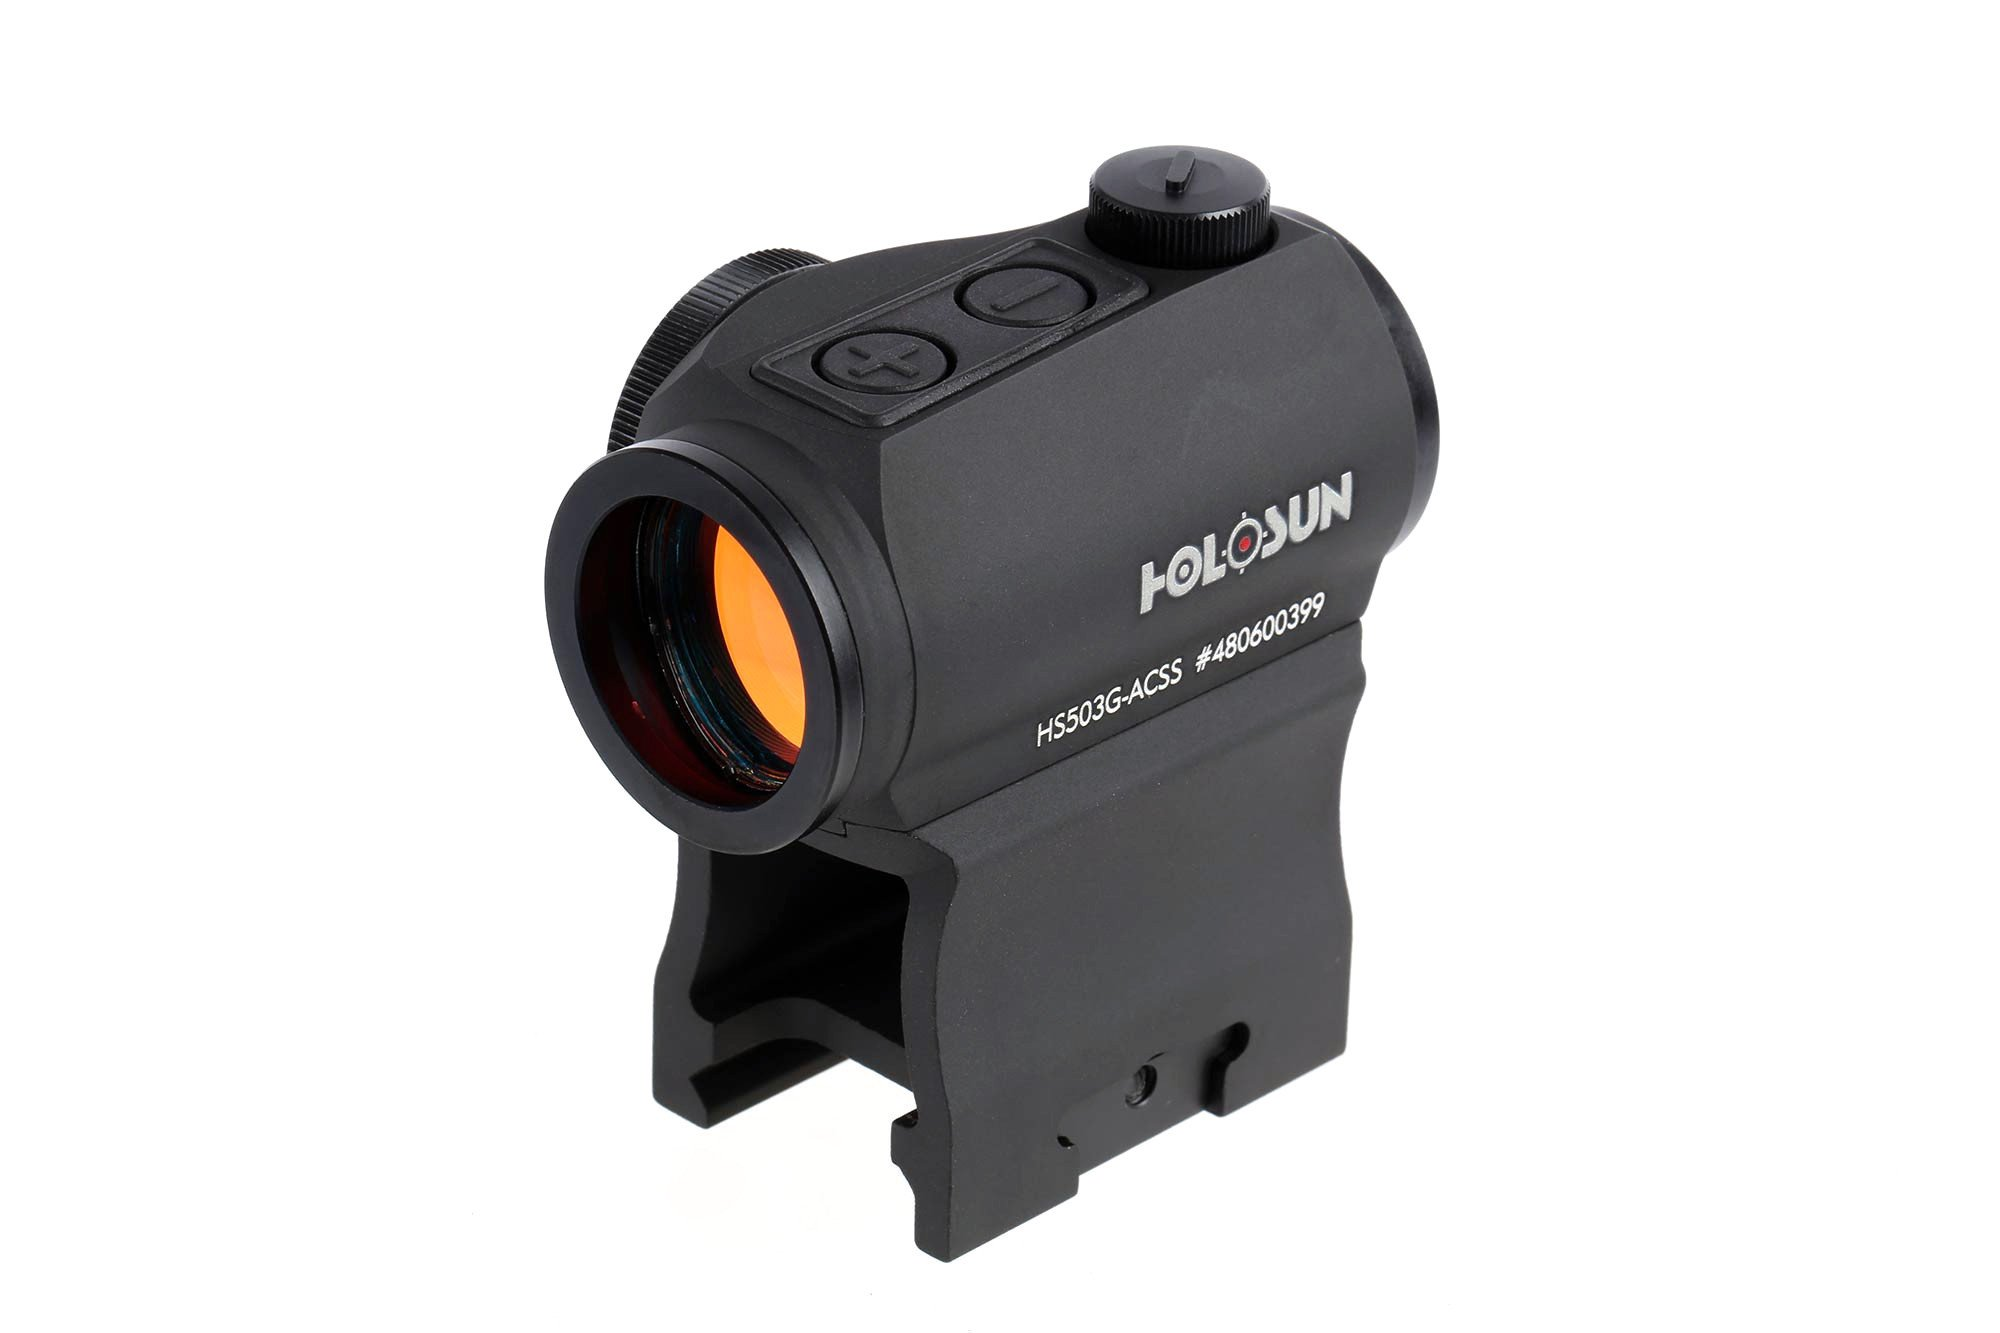 Holosun Paralow HS503G Micro Red Dot Sight ACSS CQB Reticle with Auto-On Function by HOLOSUN